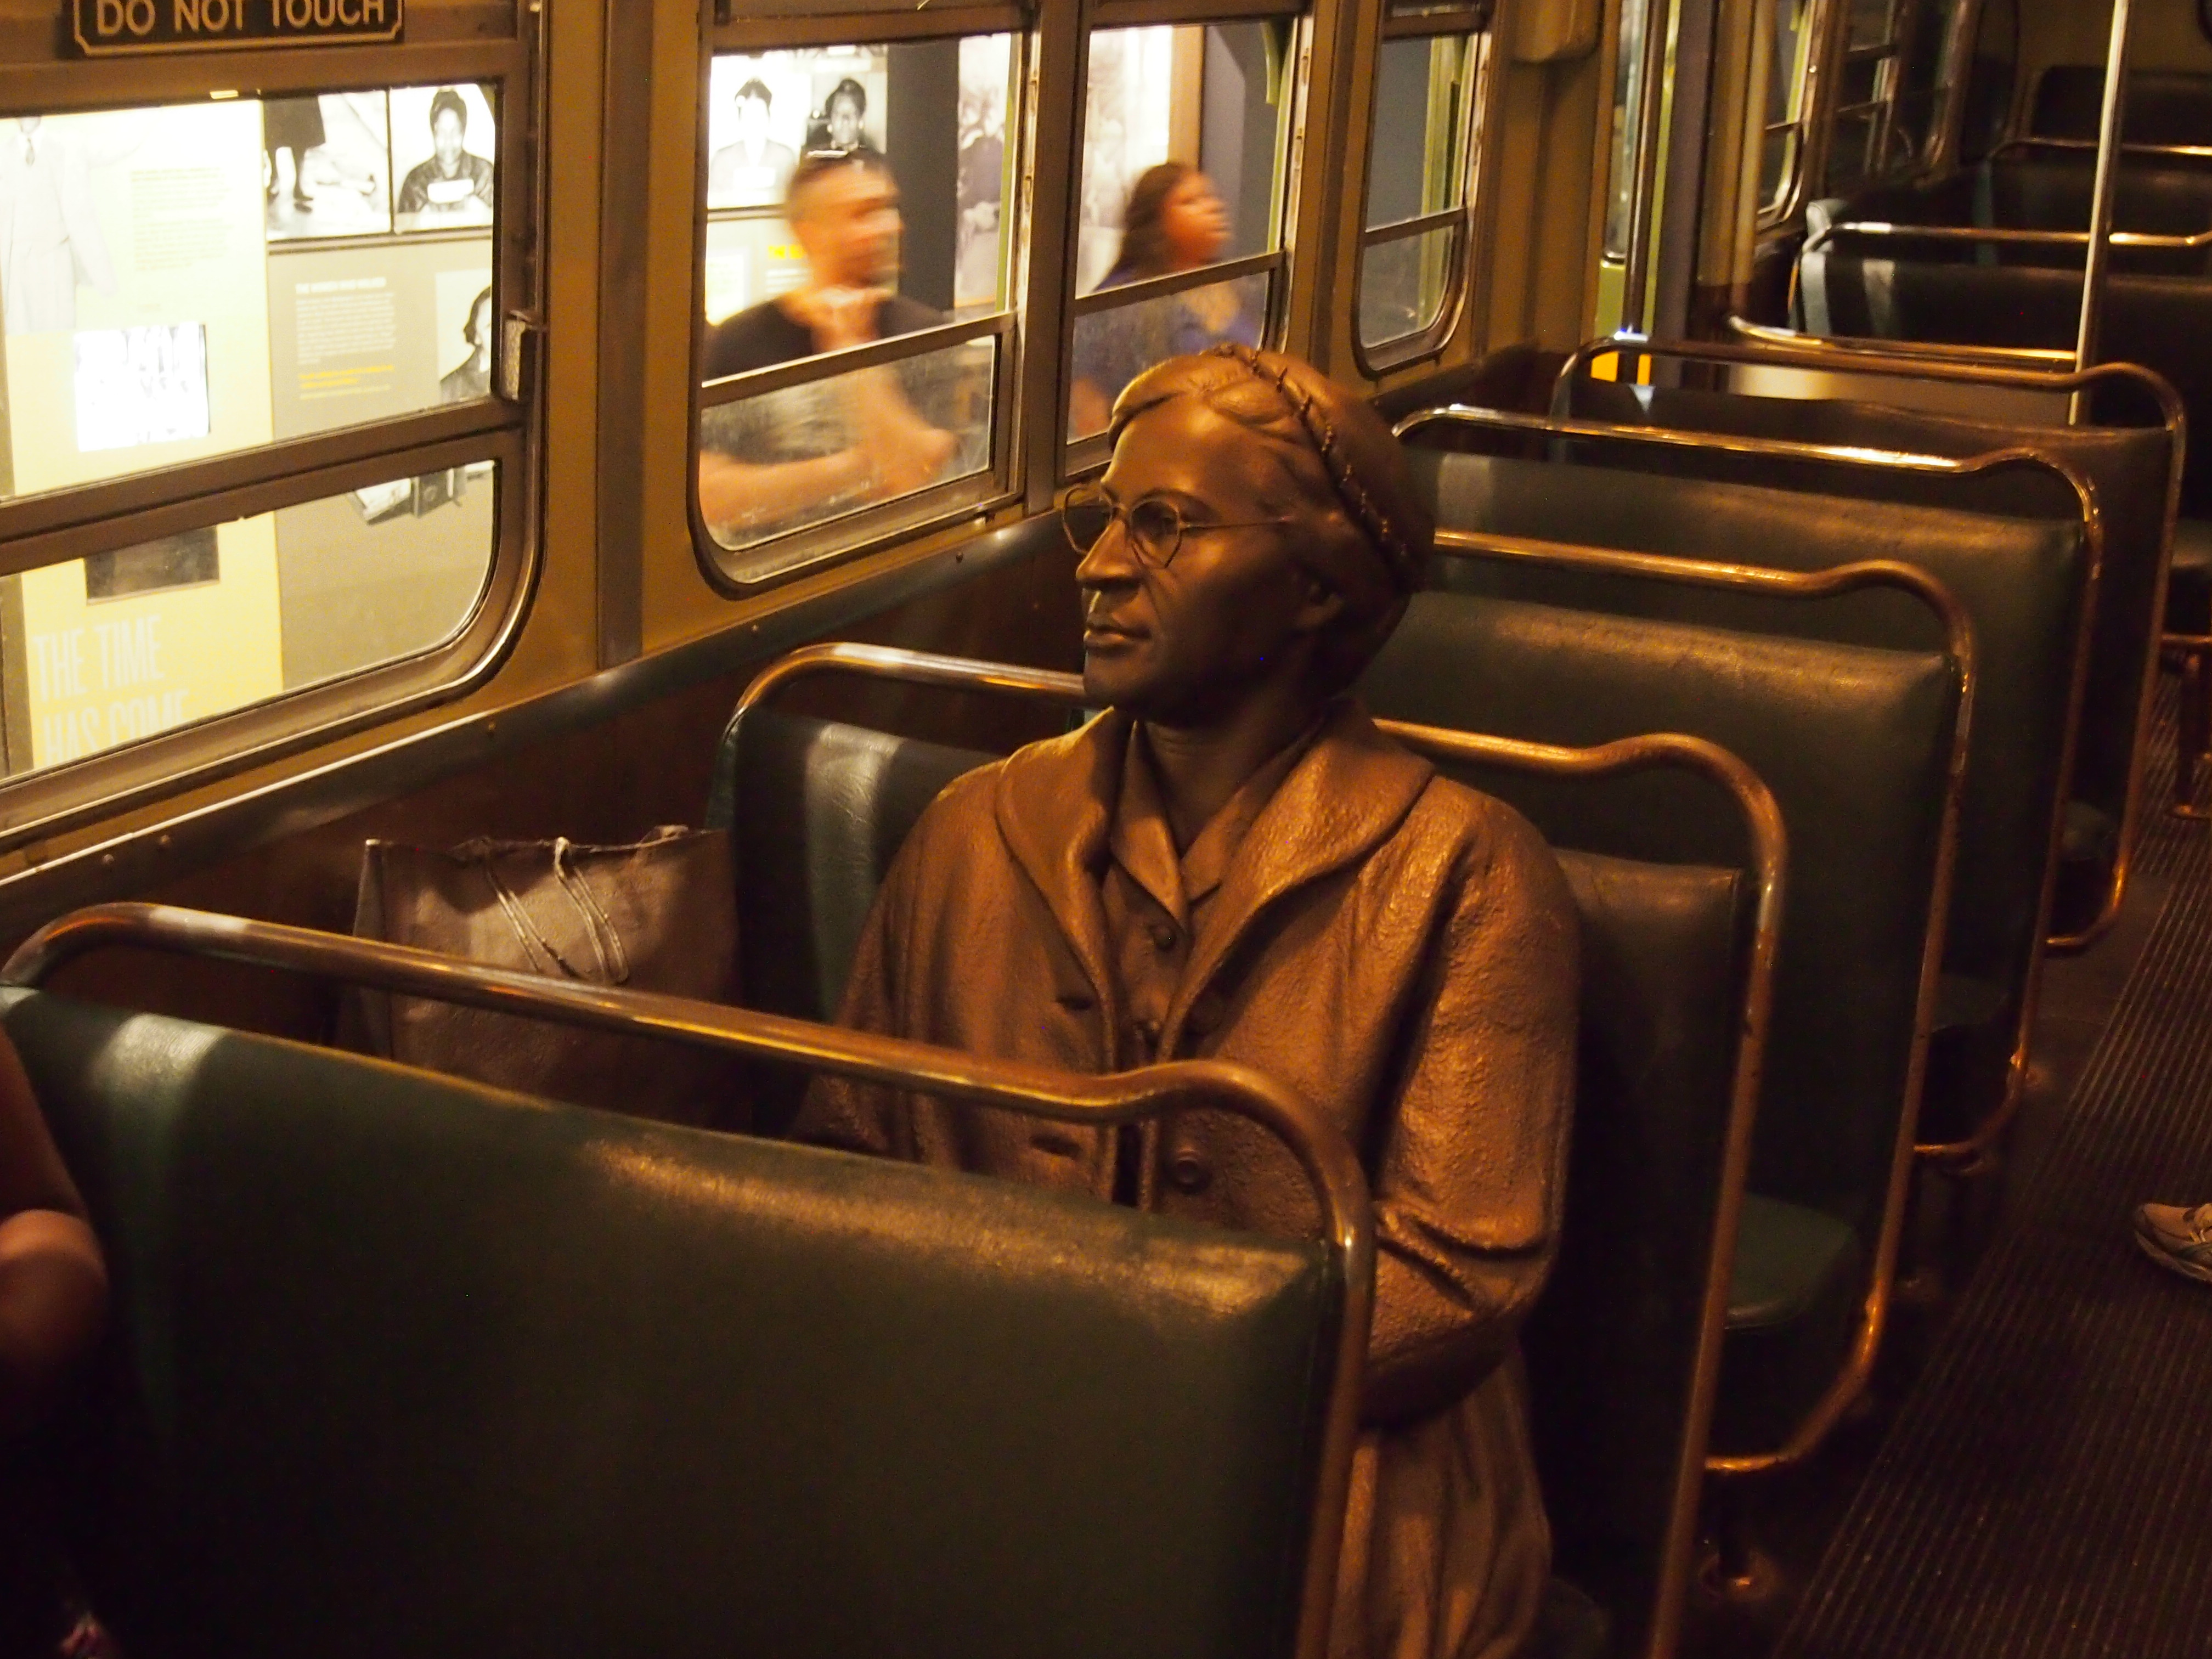 National Civil Rights Museum Montgomerty Bus Boycott - Rosa Parks